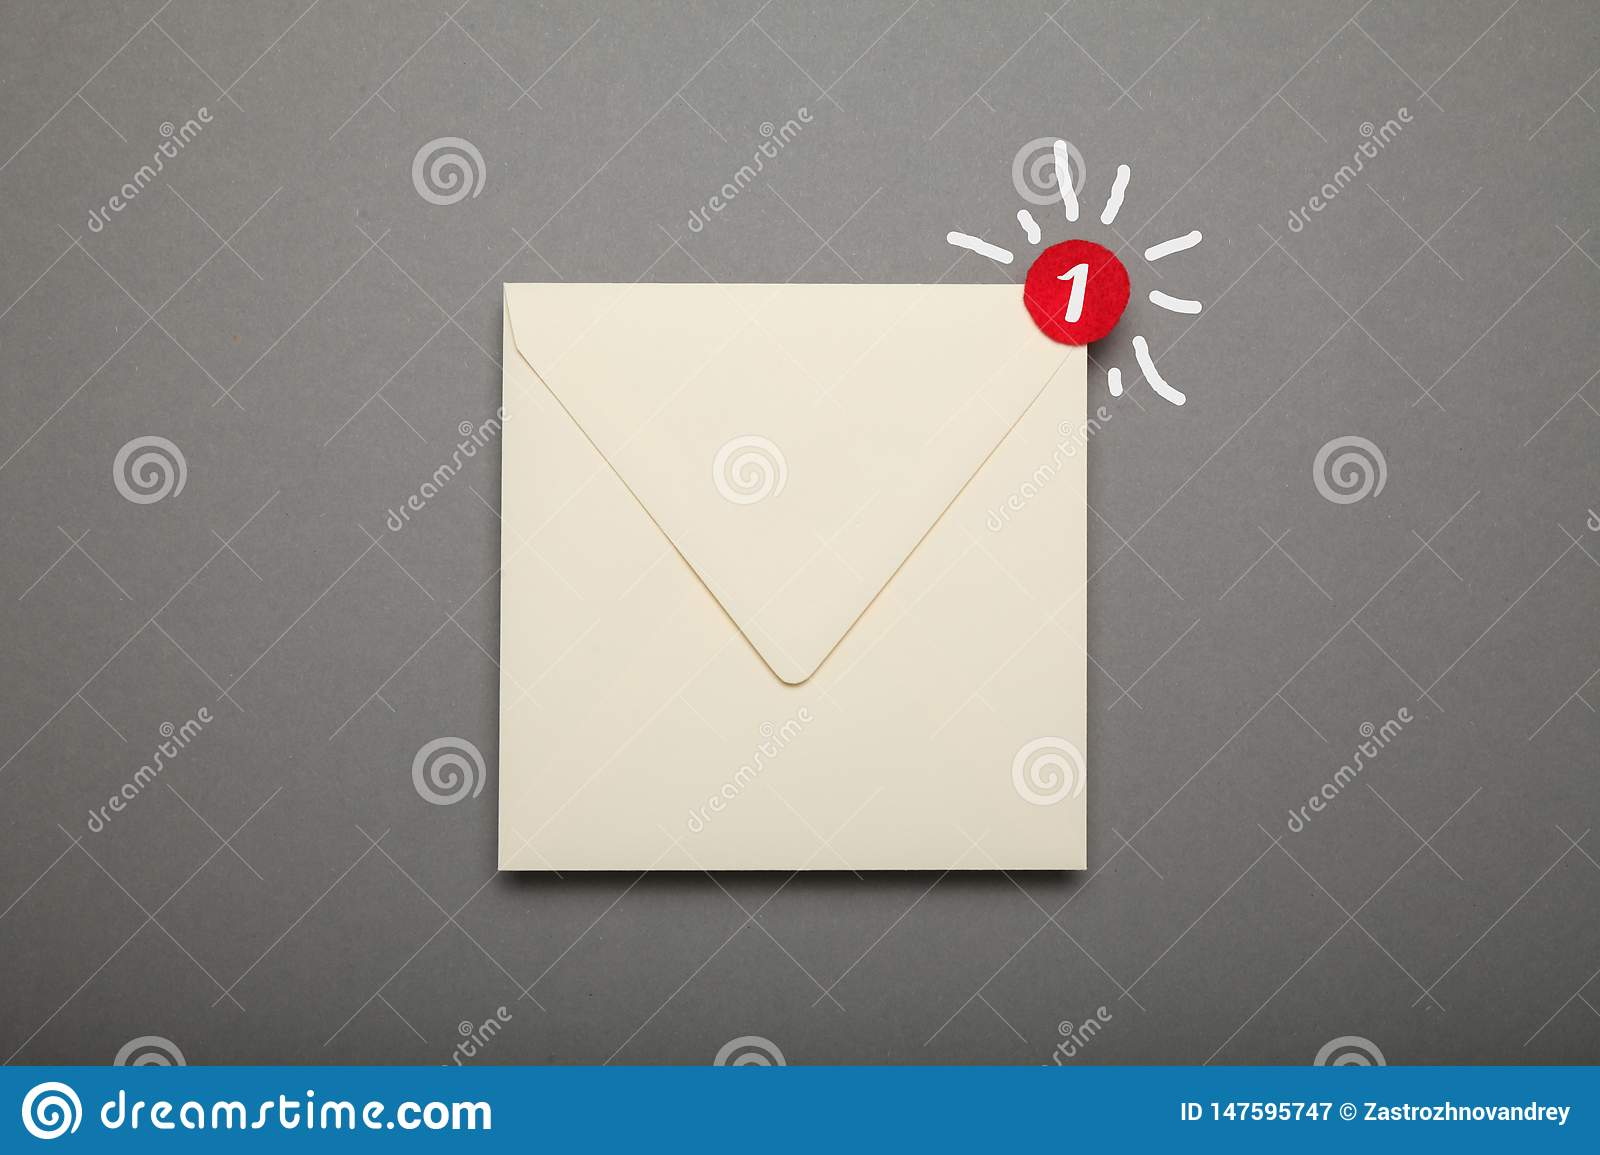 Communication correspondence email, red circle in corner. Exclamation, important envelope